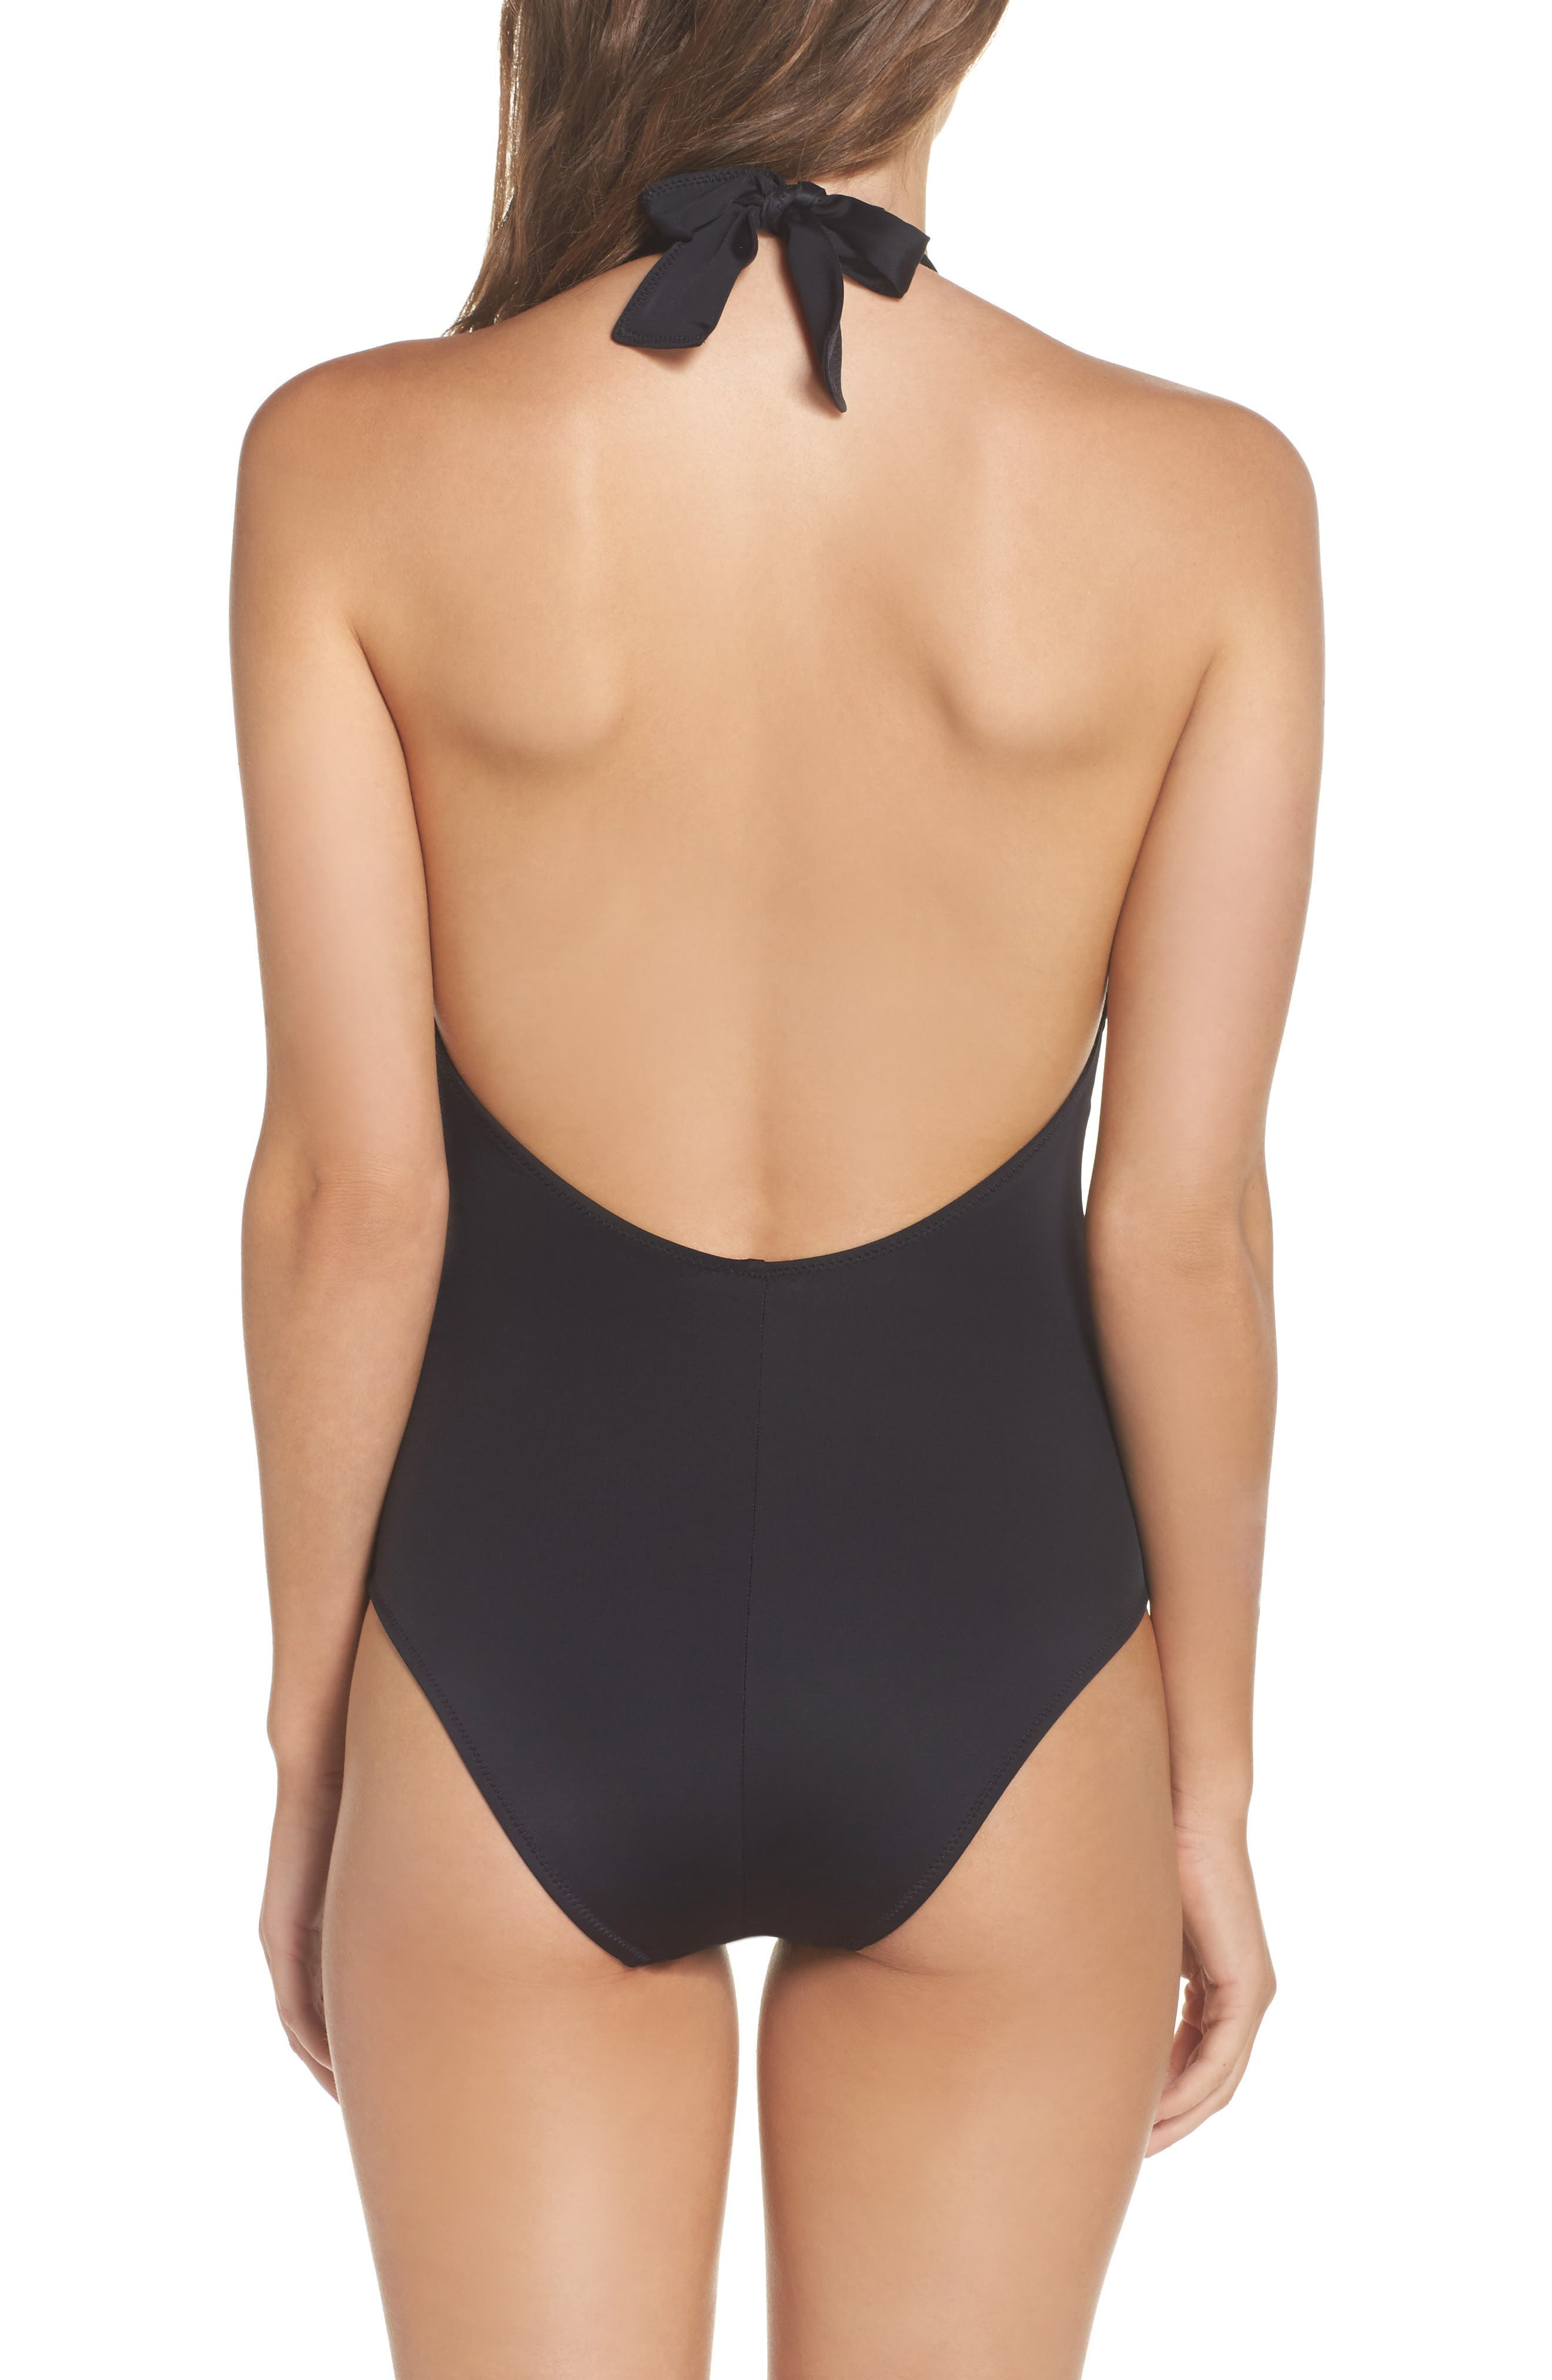 Willow Plunge One-Piece Swimsuit,                             Alternate thumbnail 2, color,                             001